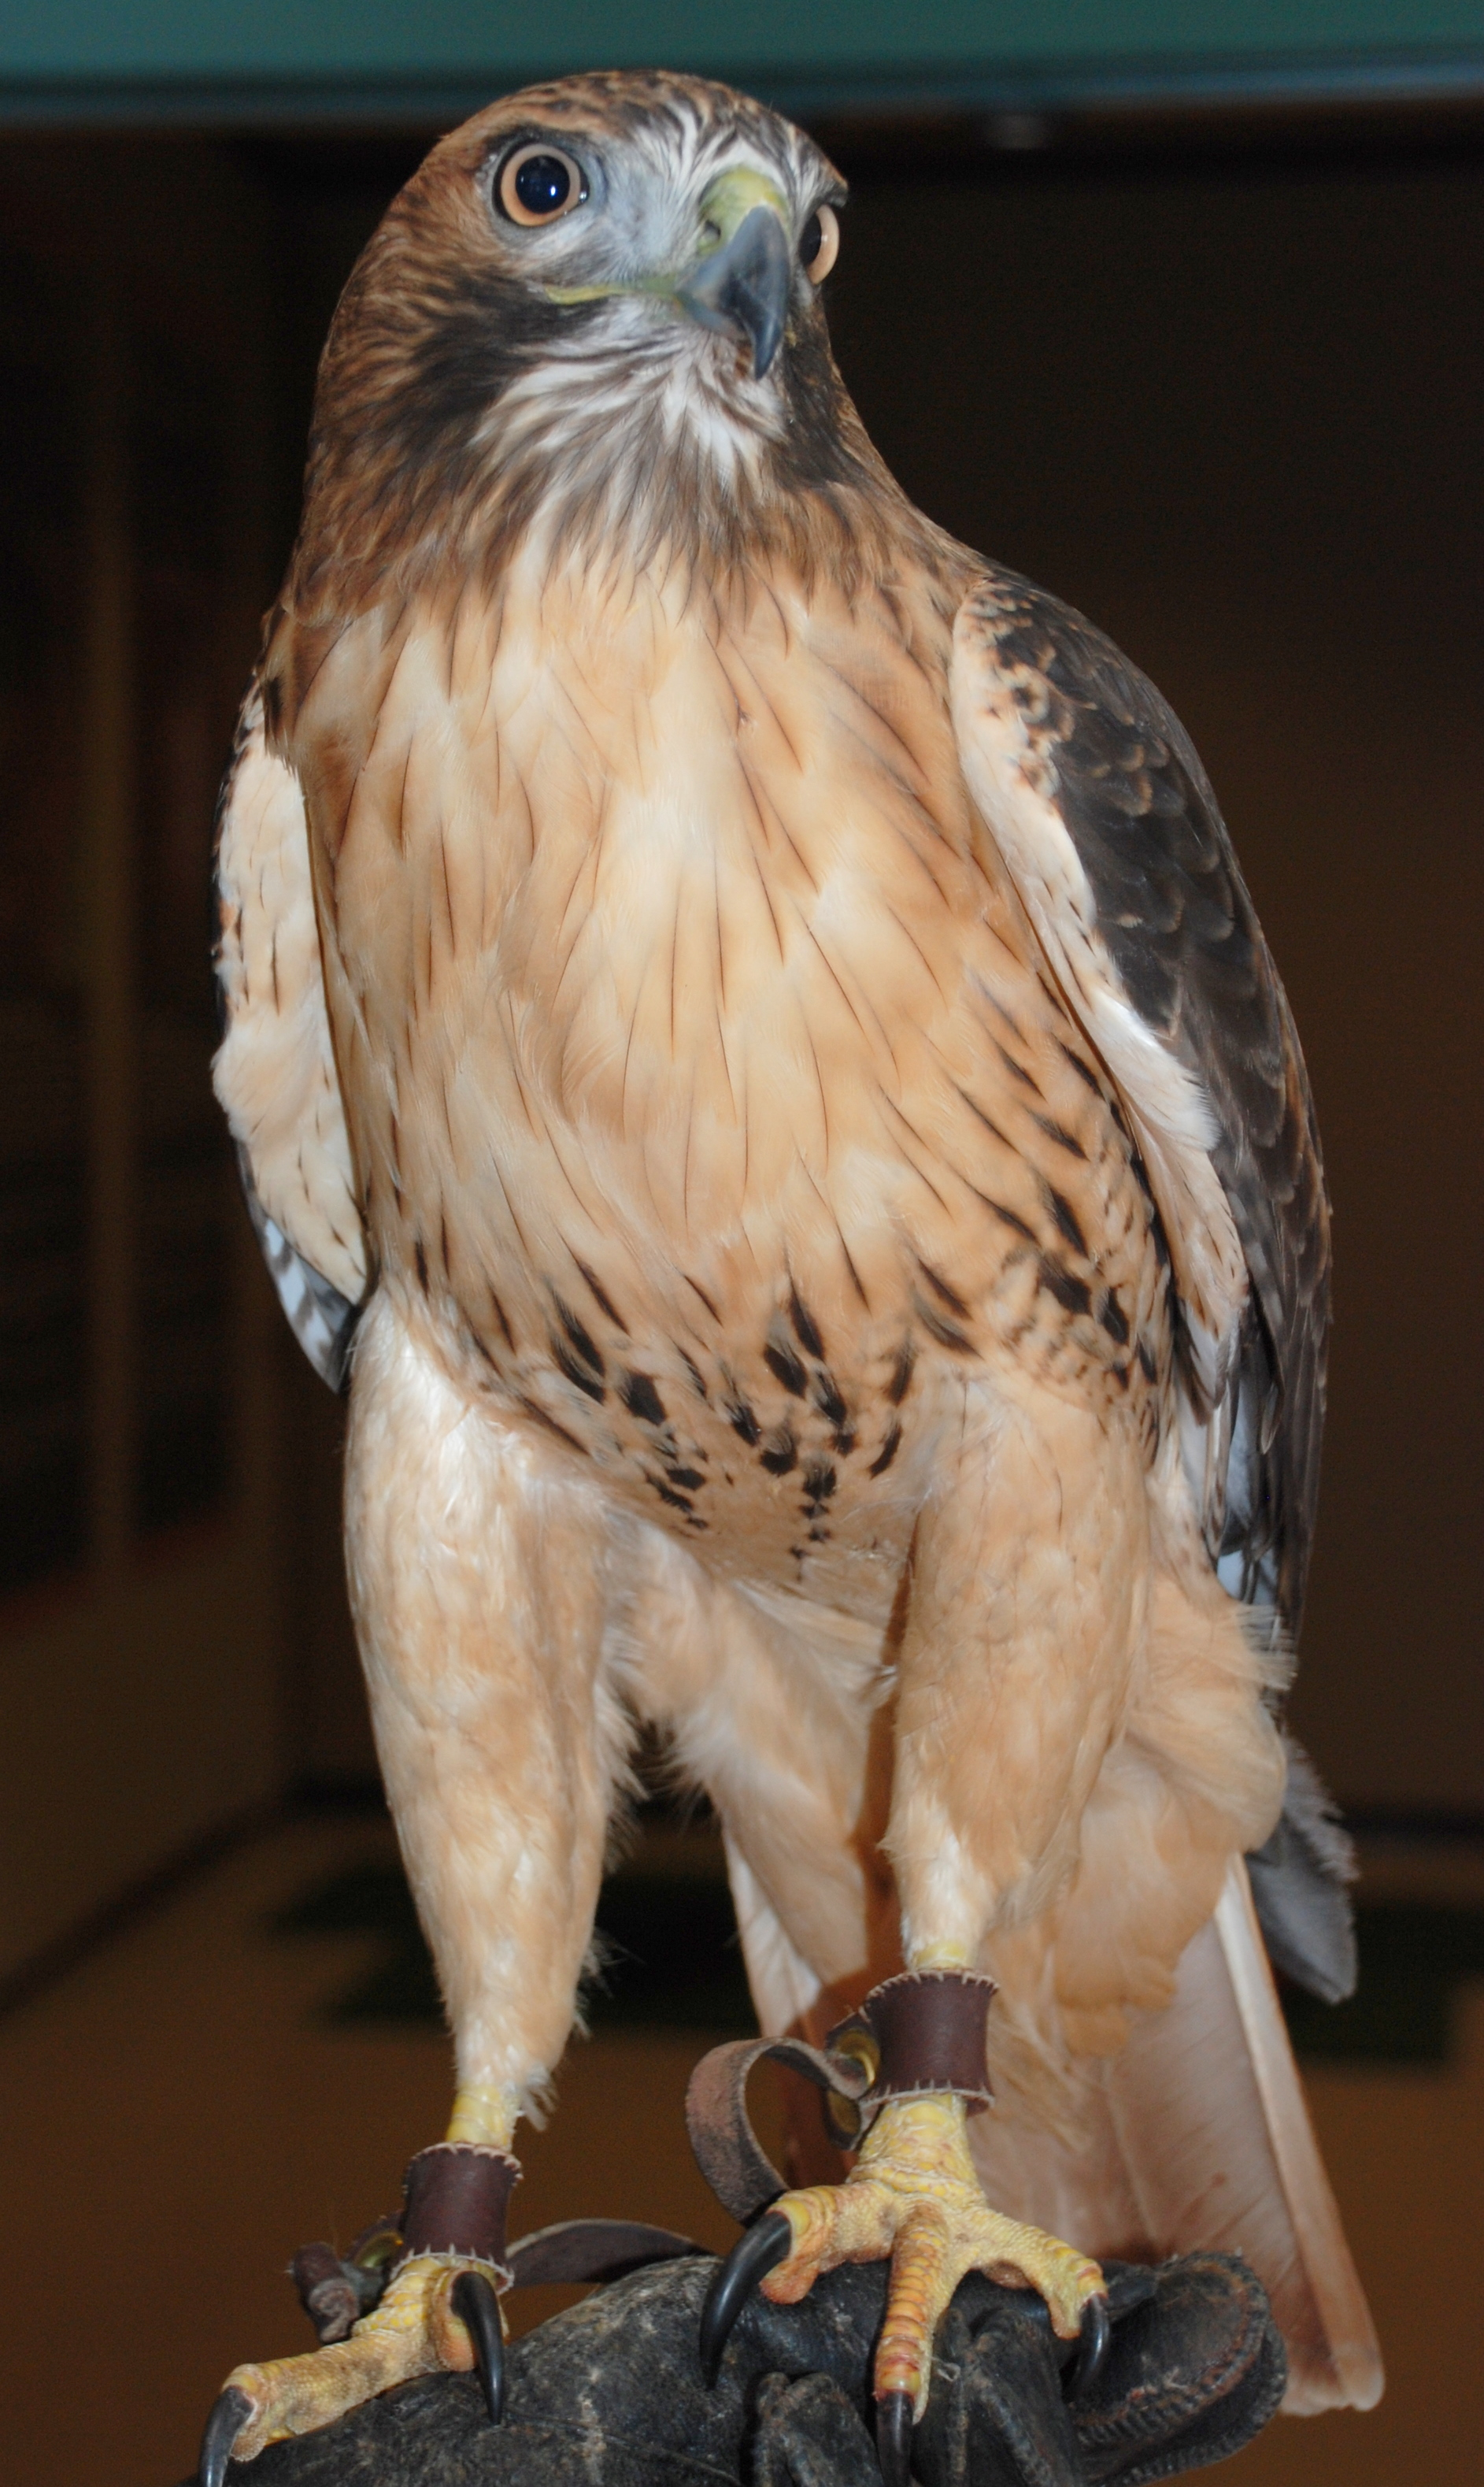 Alula, a red-tailed hawk